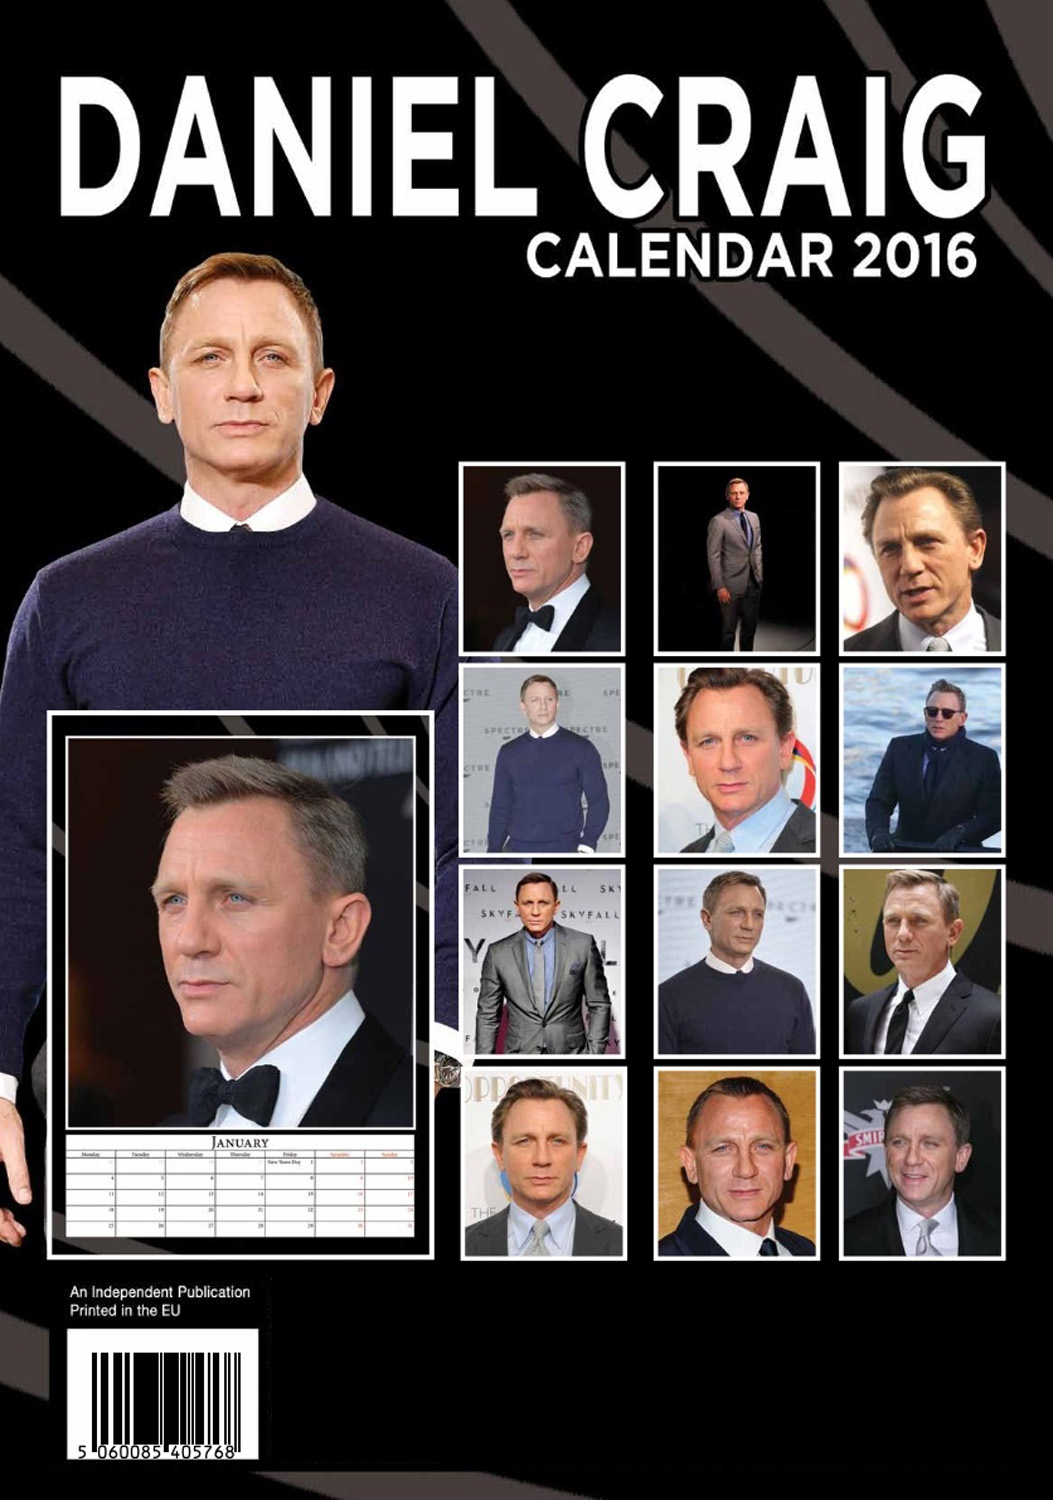 Daniel Craig Celebrity Wall Calendar 2016  back 9788898521692